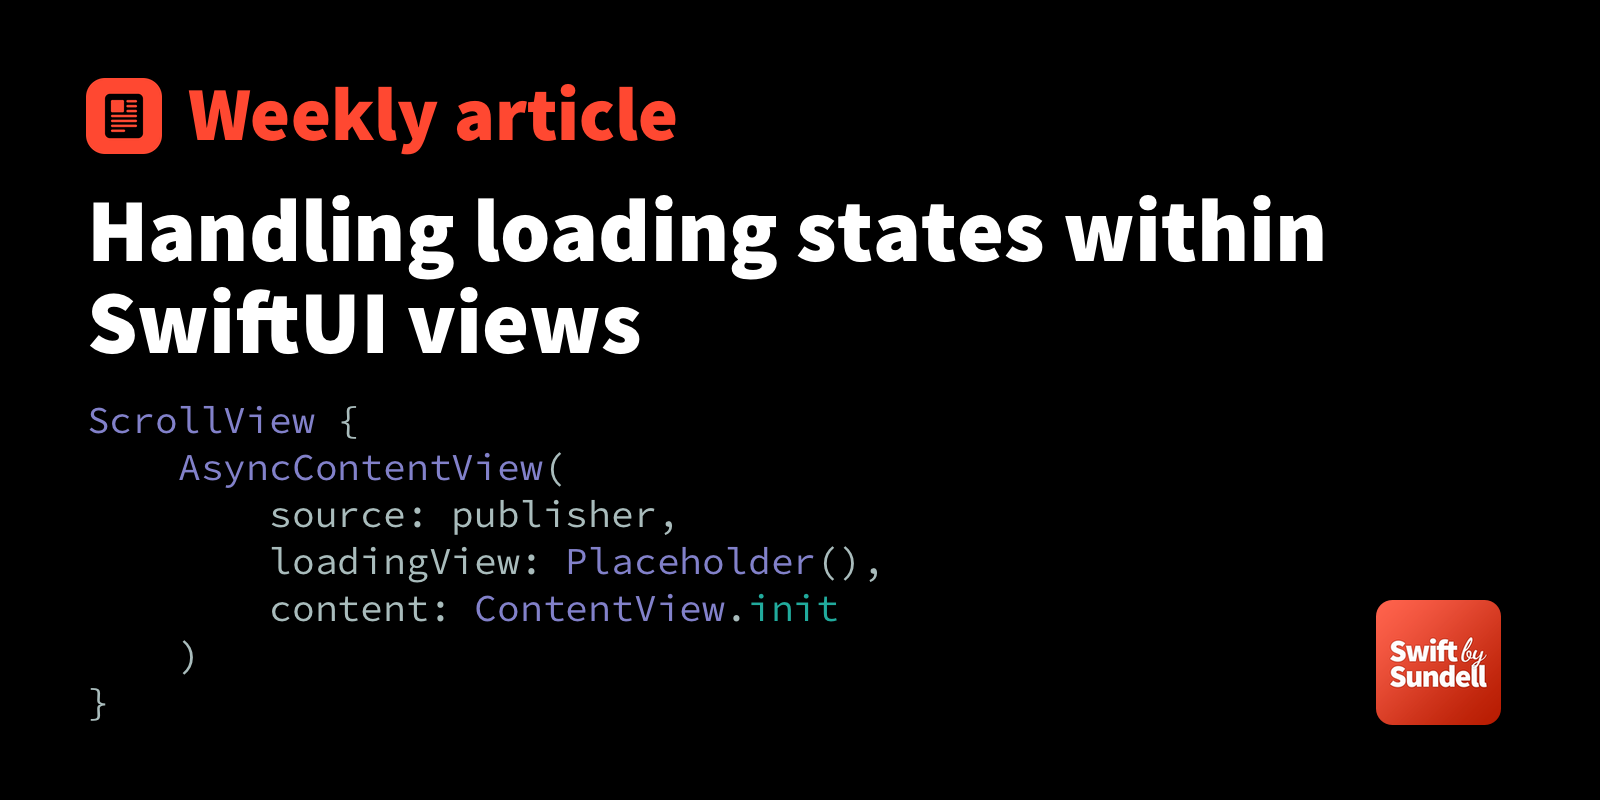 Handling loading states within SwiftUI views | Swift by Sundell